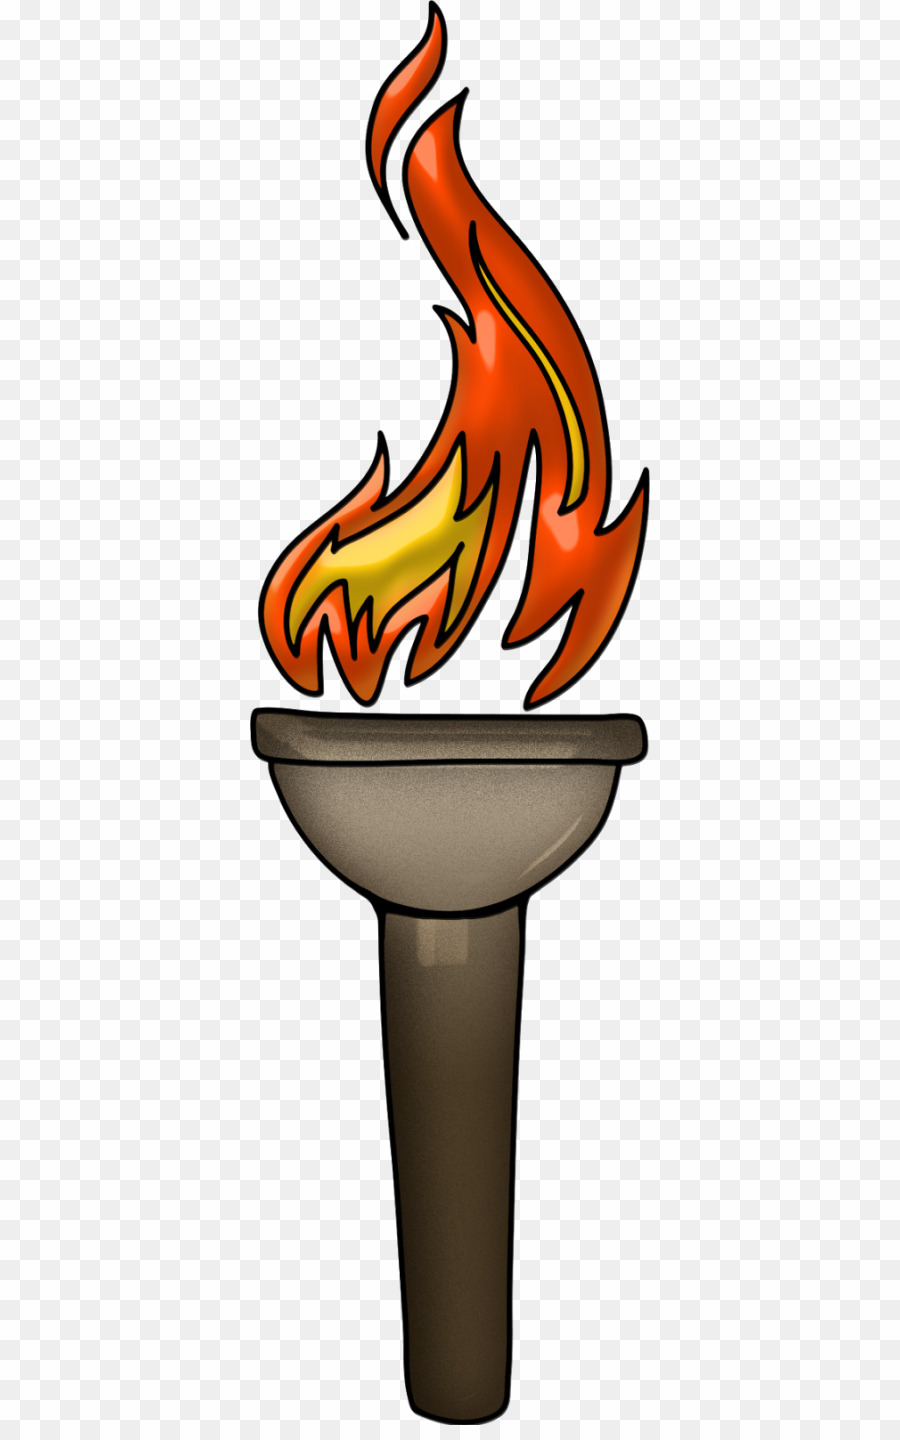 Torch PNG Torch Clipart download.